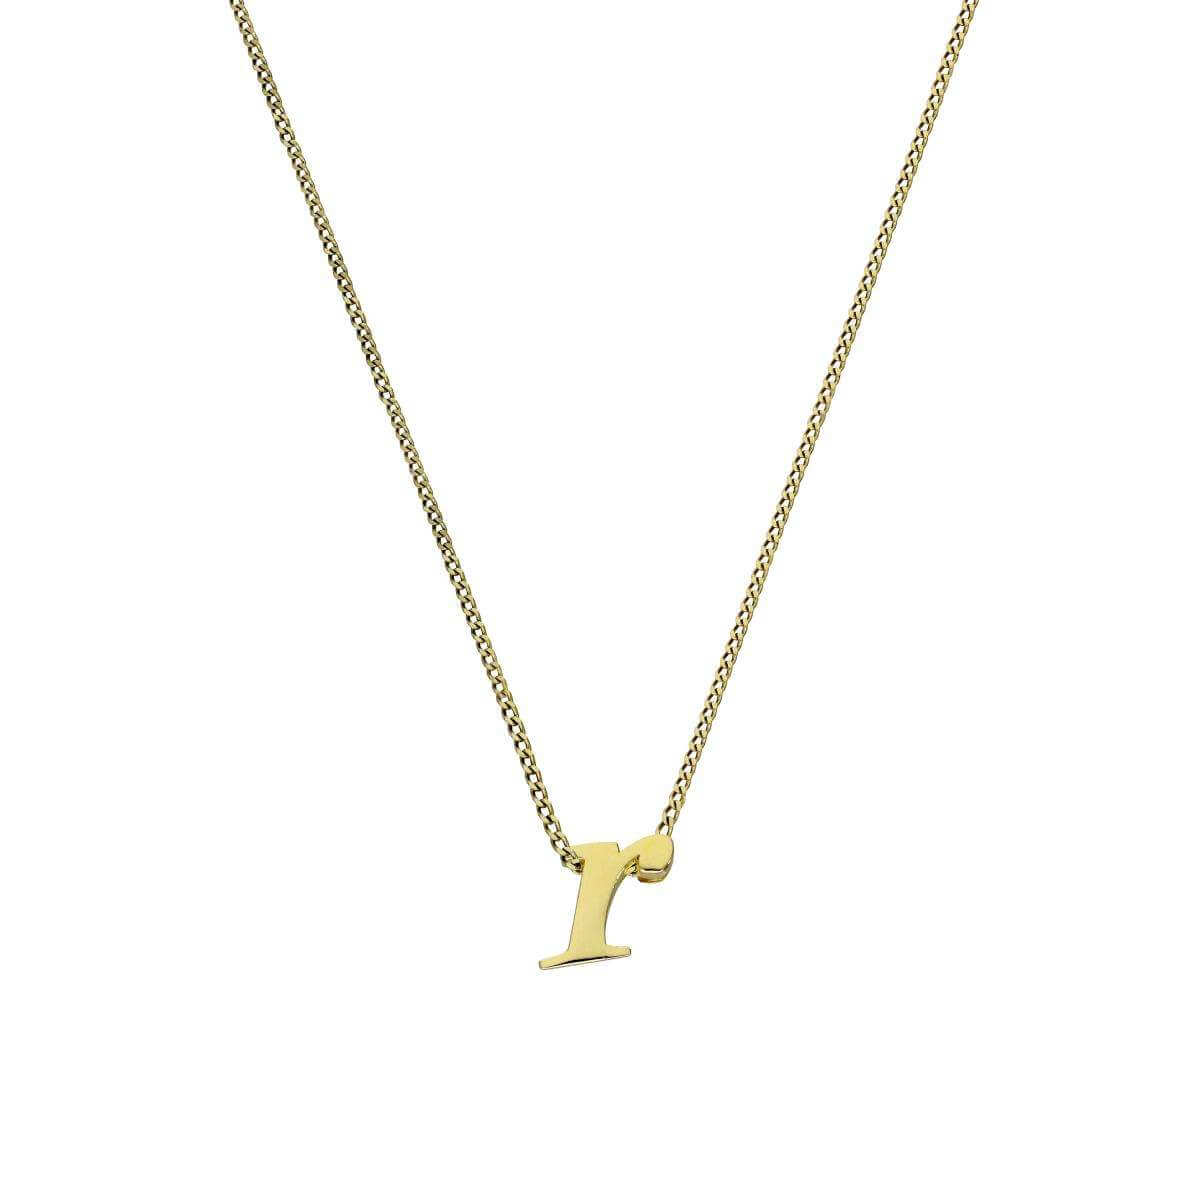 Tiny 9ct Gold Alphabet Letter R Pendant Necklace 16 - 20 Inches